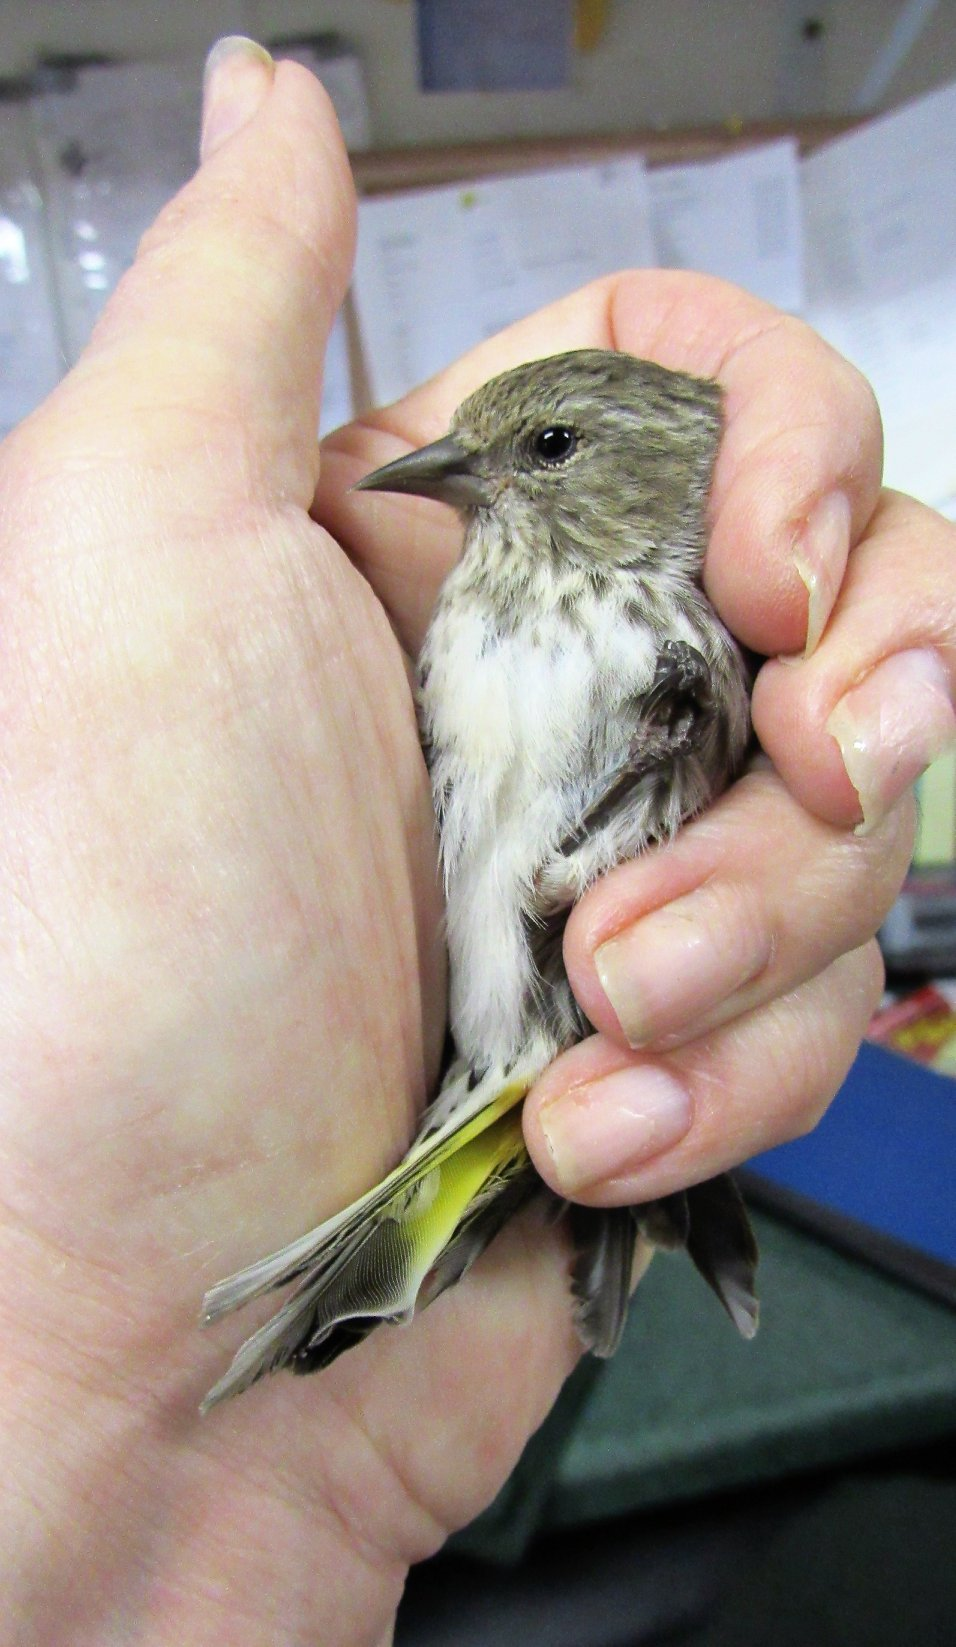 A lovely Pine siskin joined 4 other siskins already in care at REGI.